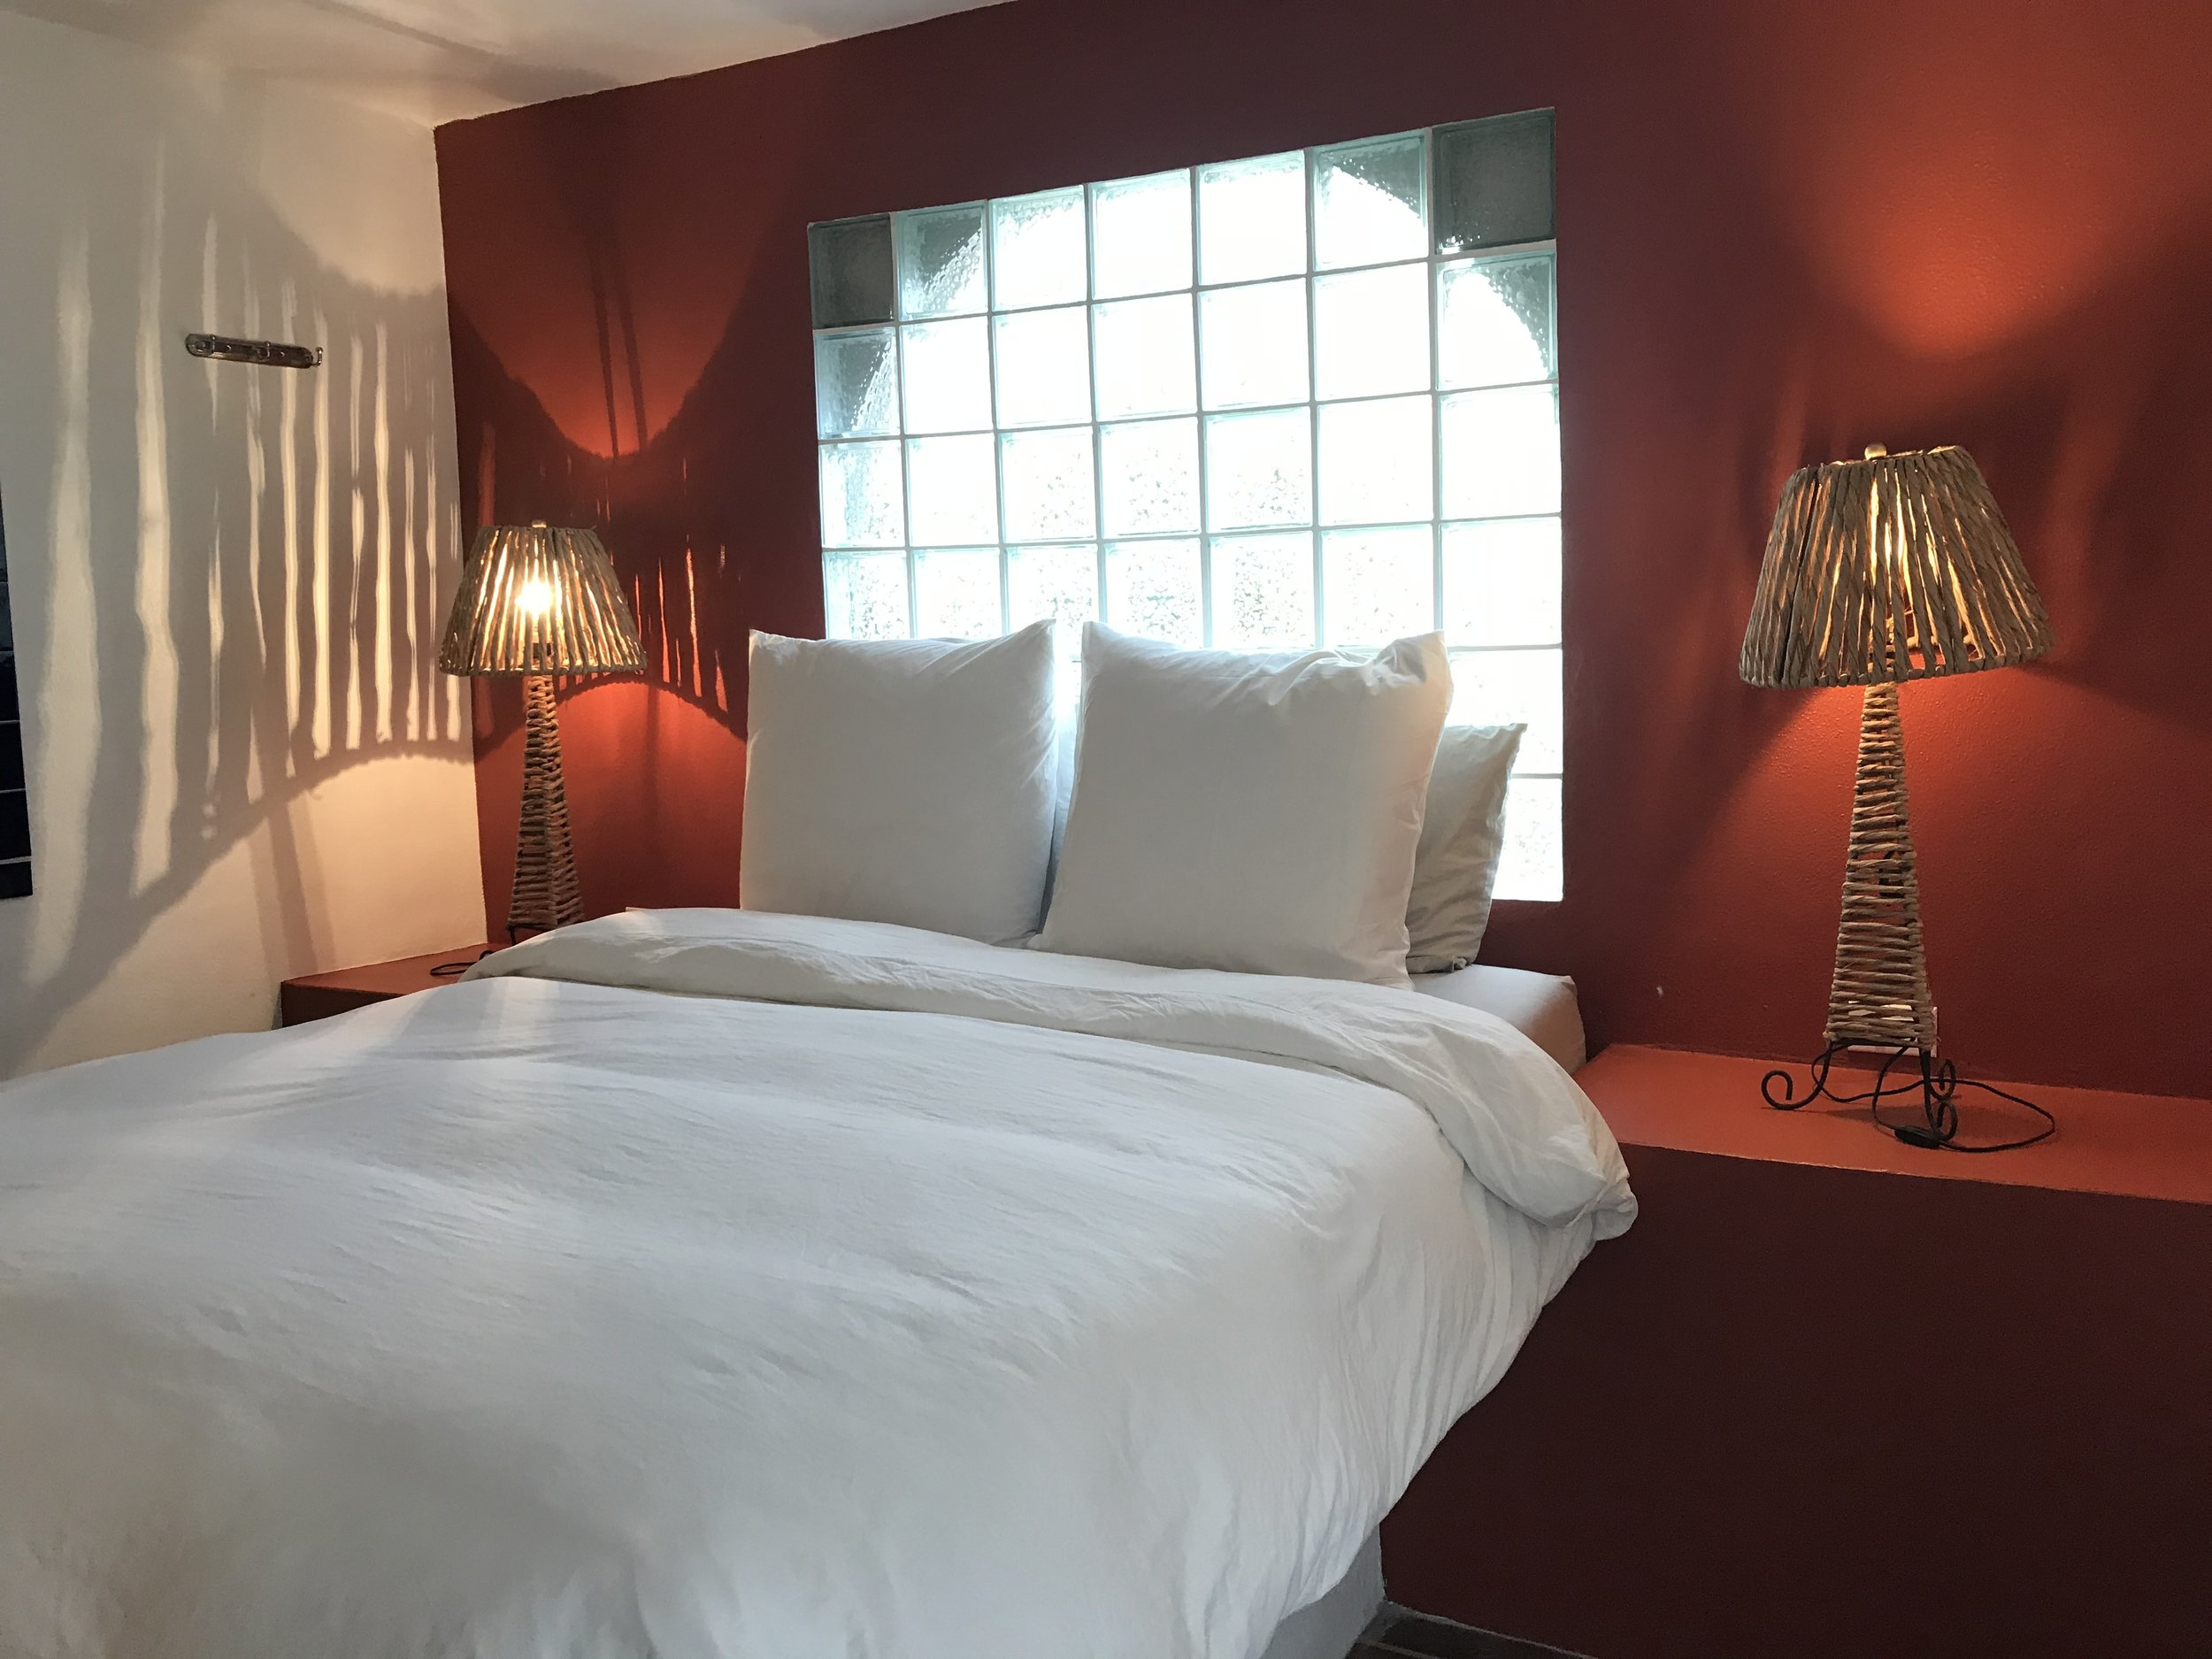 Queen Bed for Two  Features: Private Bath,Modern Suite, Queen Size Bed